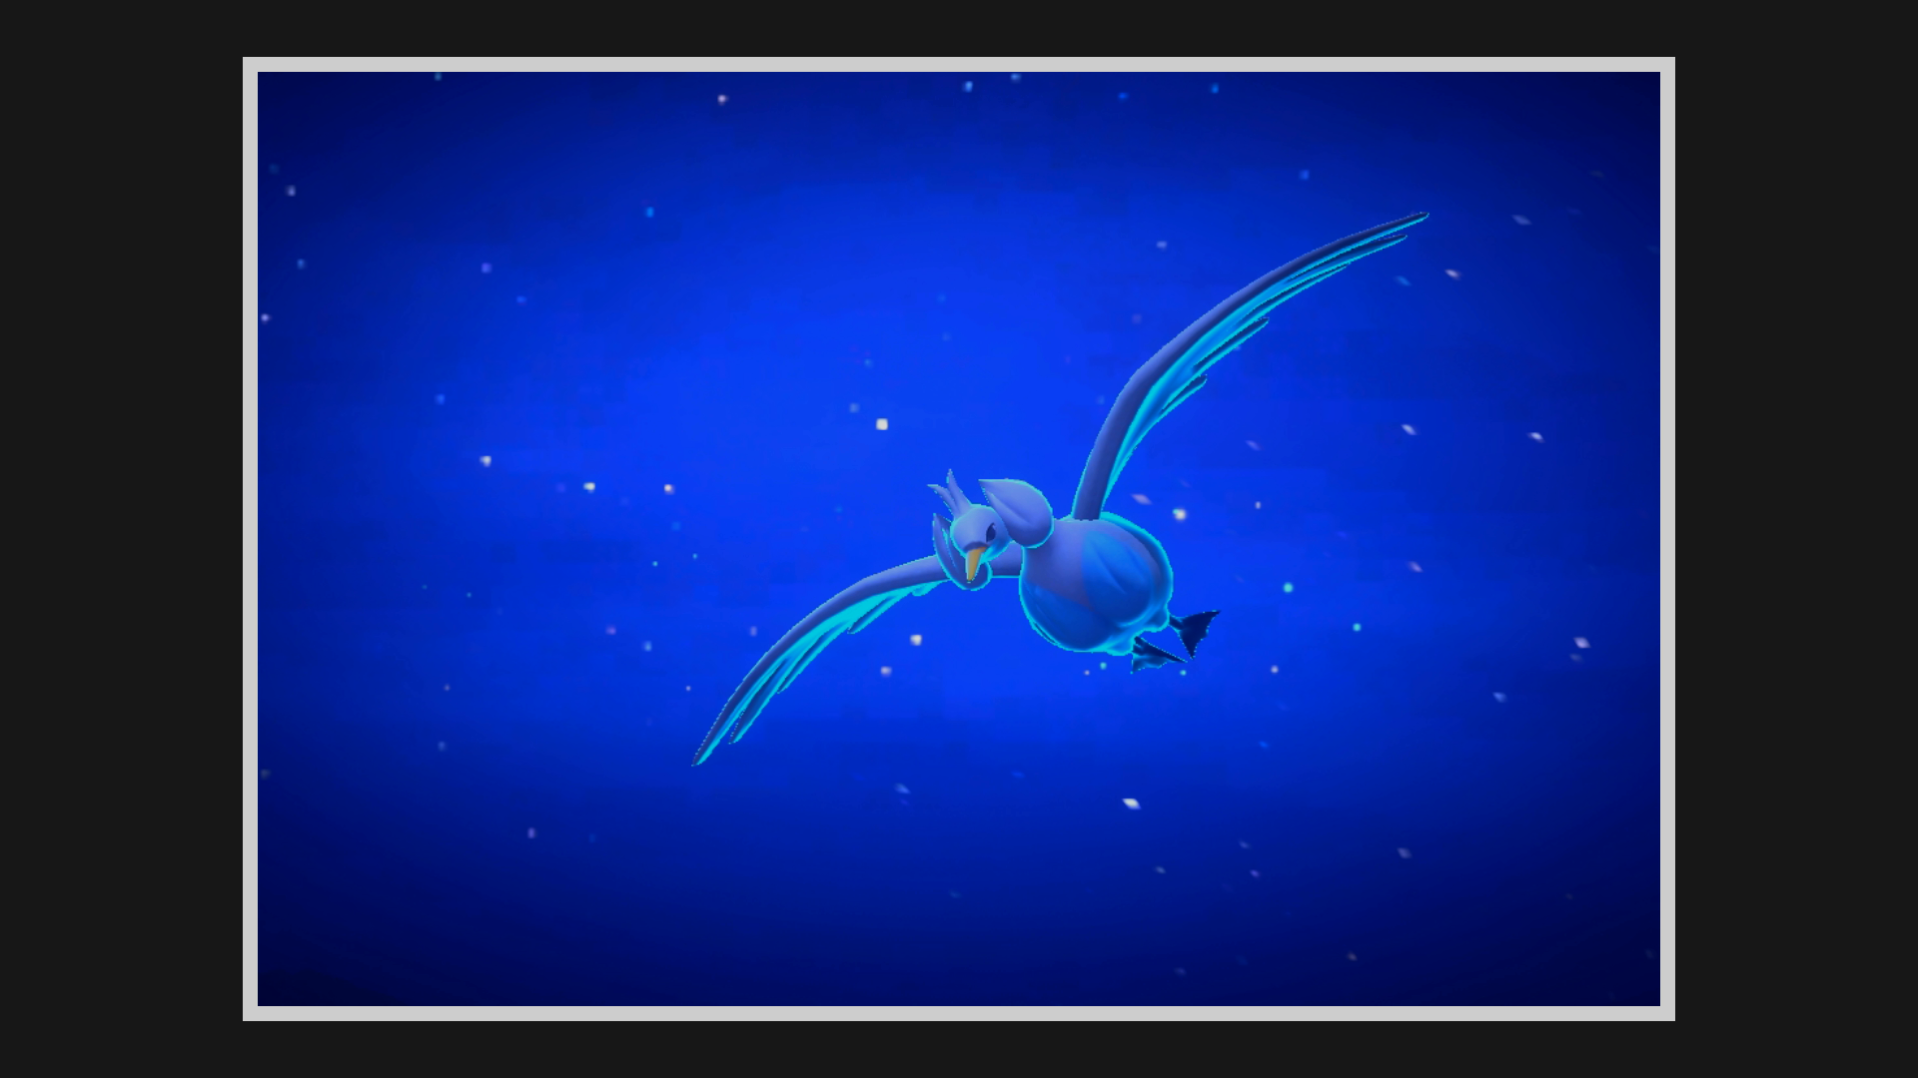 A Swanna with a blue glow flies through the nighttime sky